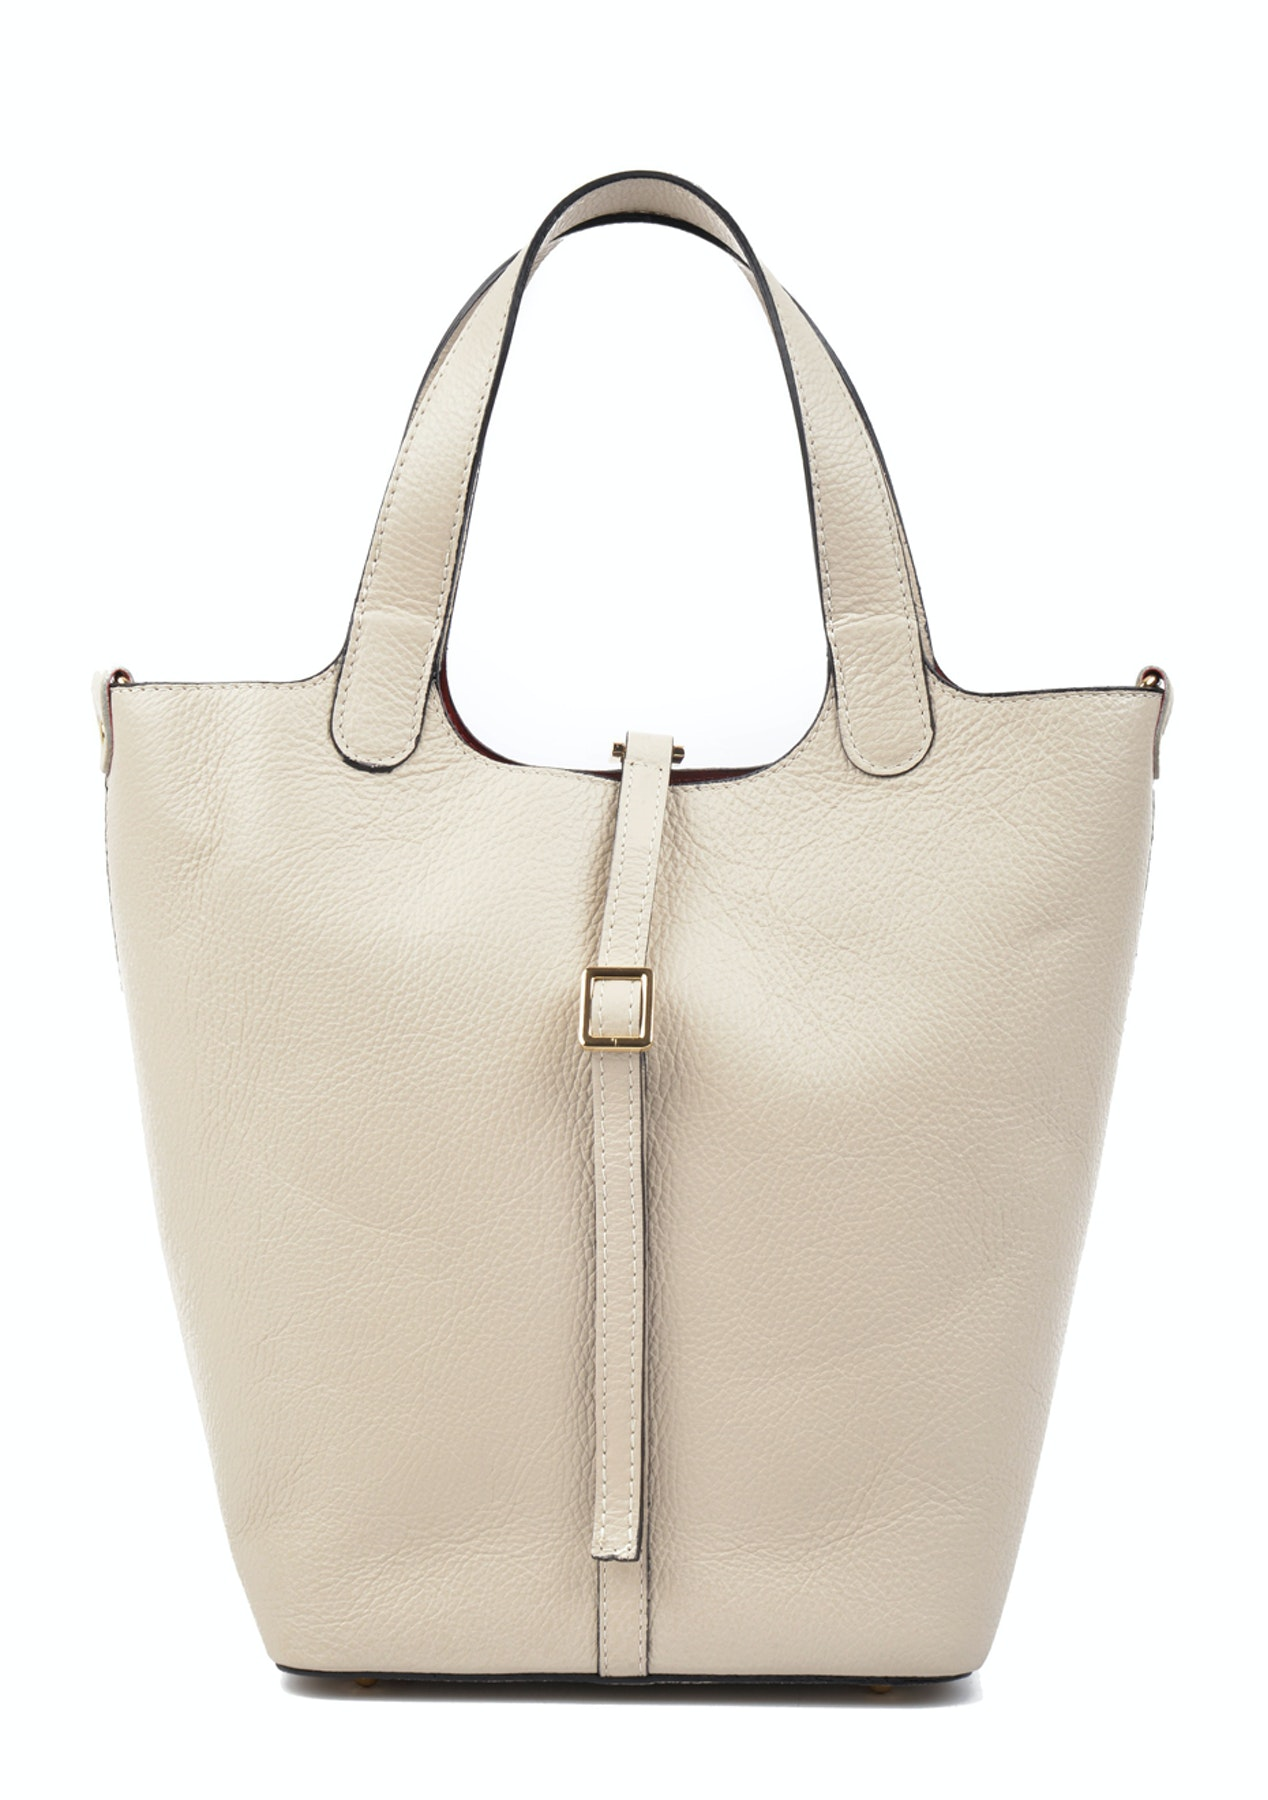 0352404472 Carla Ferreri - Top Handle Bag - Beige - Monochrome Leather bags up to 74%  off - Onceit